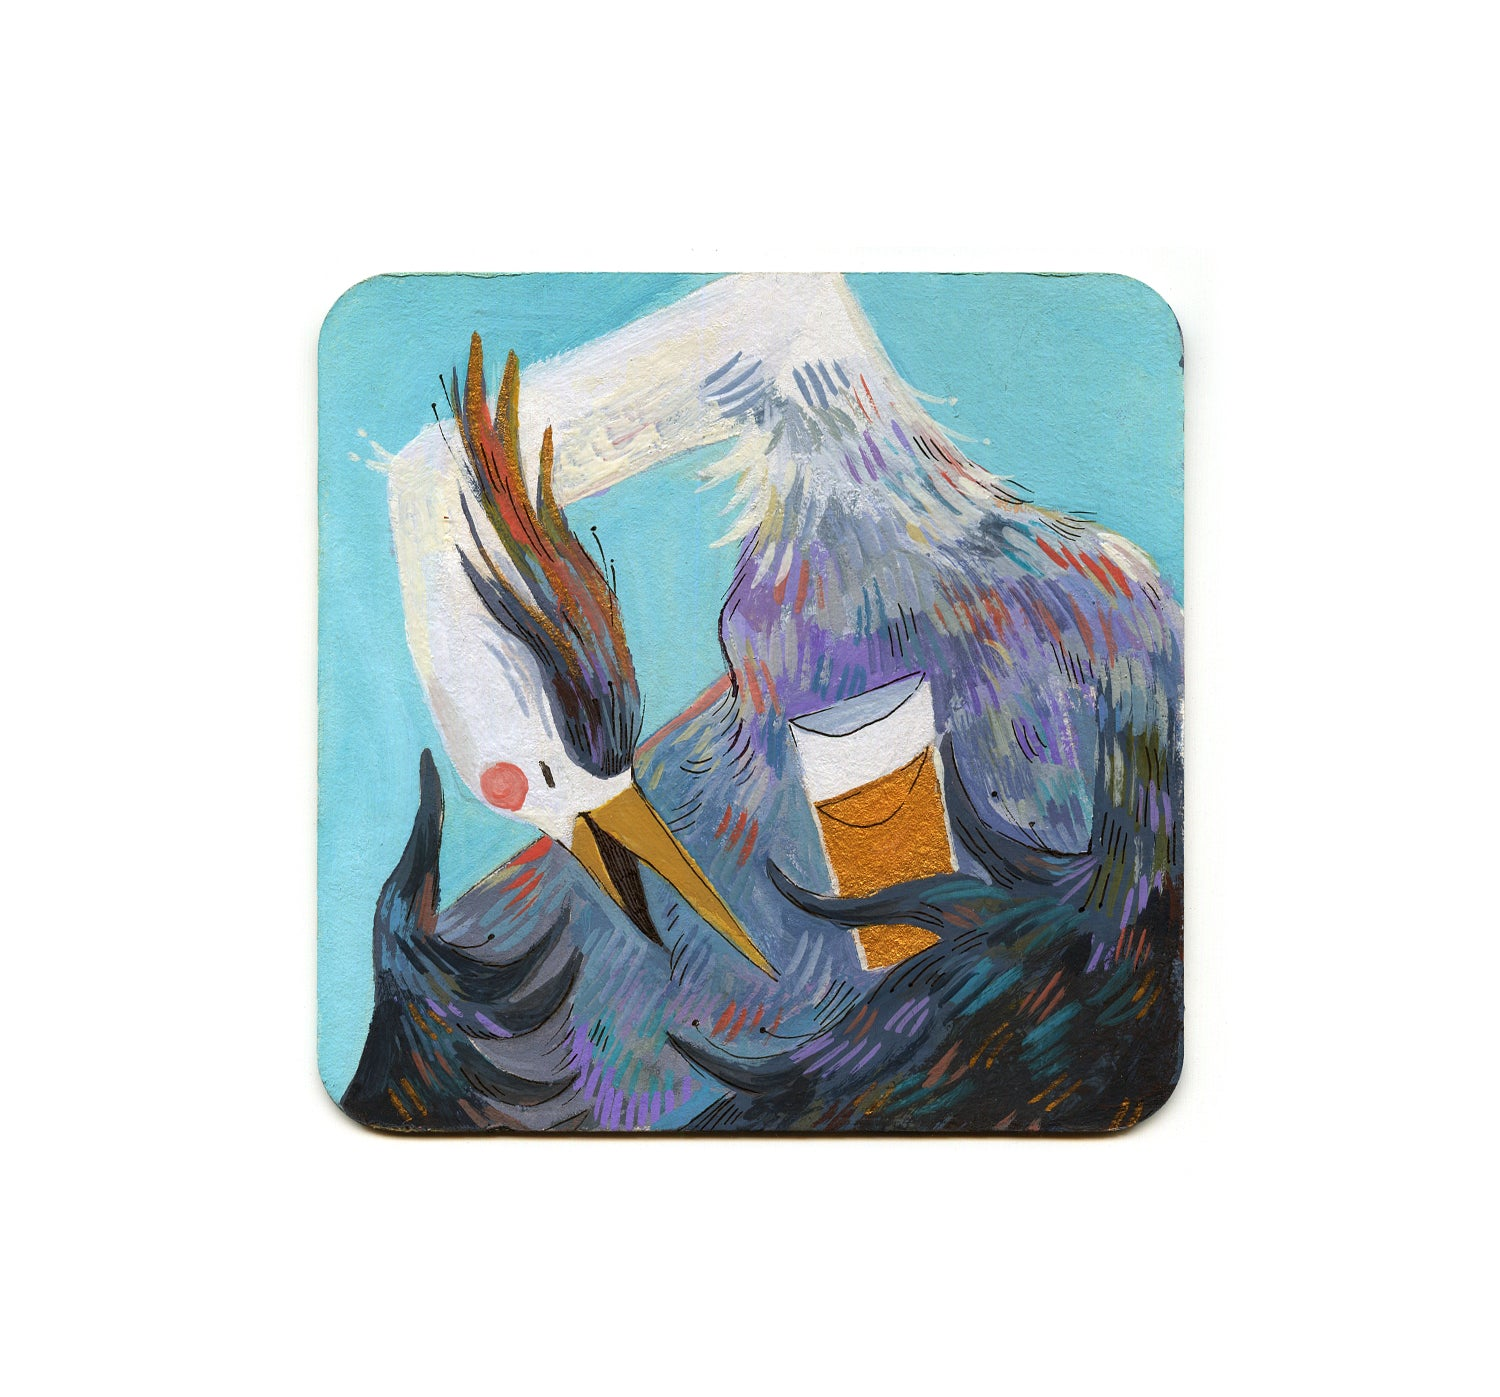 S1 Zoe Persico - All Day IPA Coaster